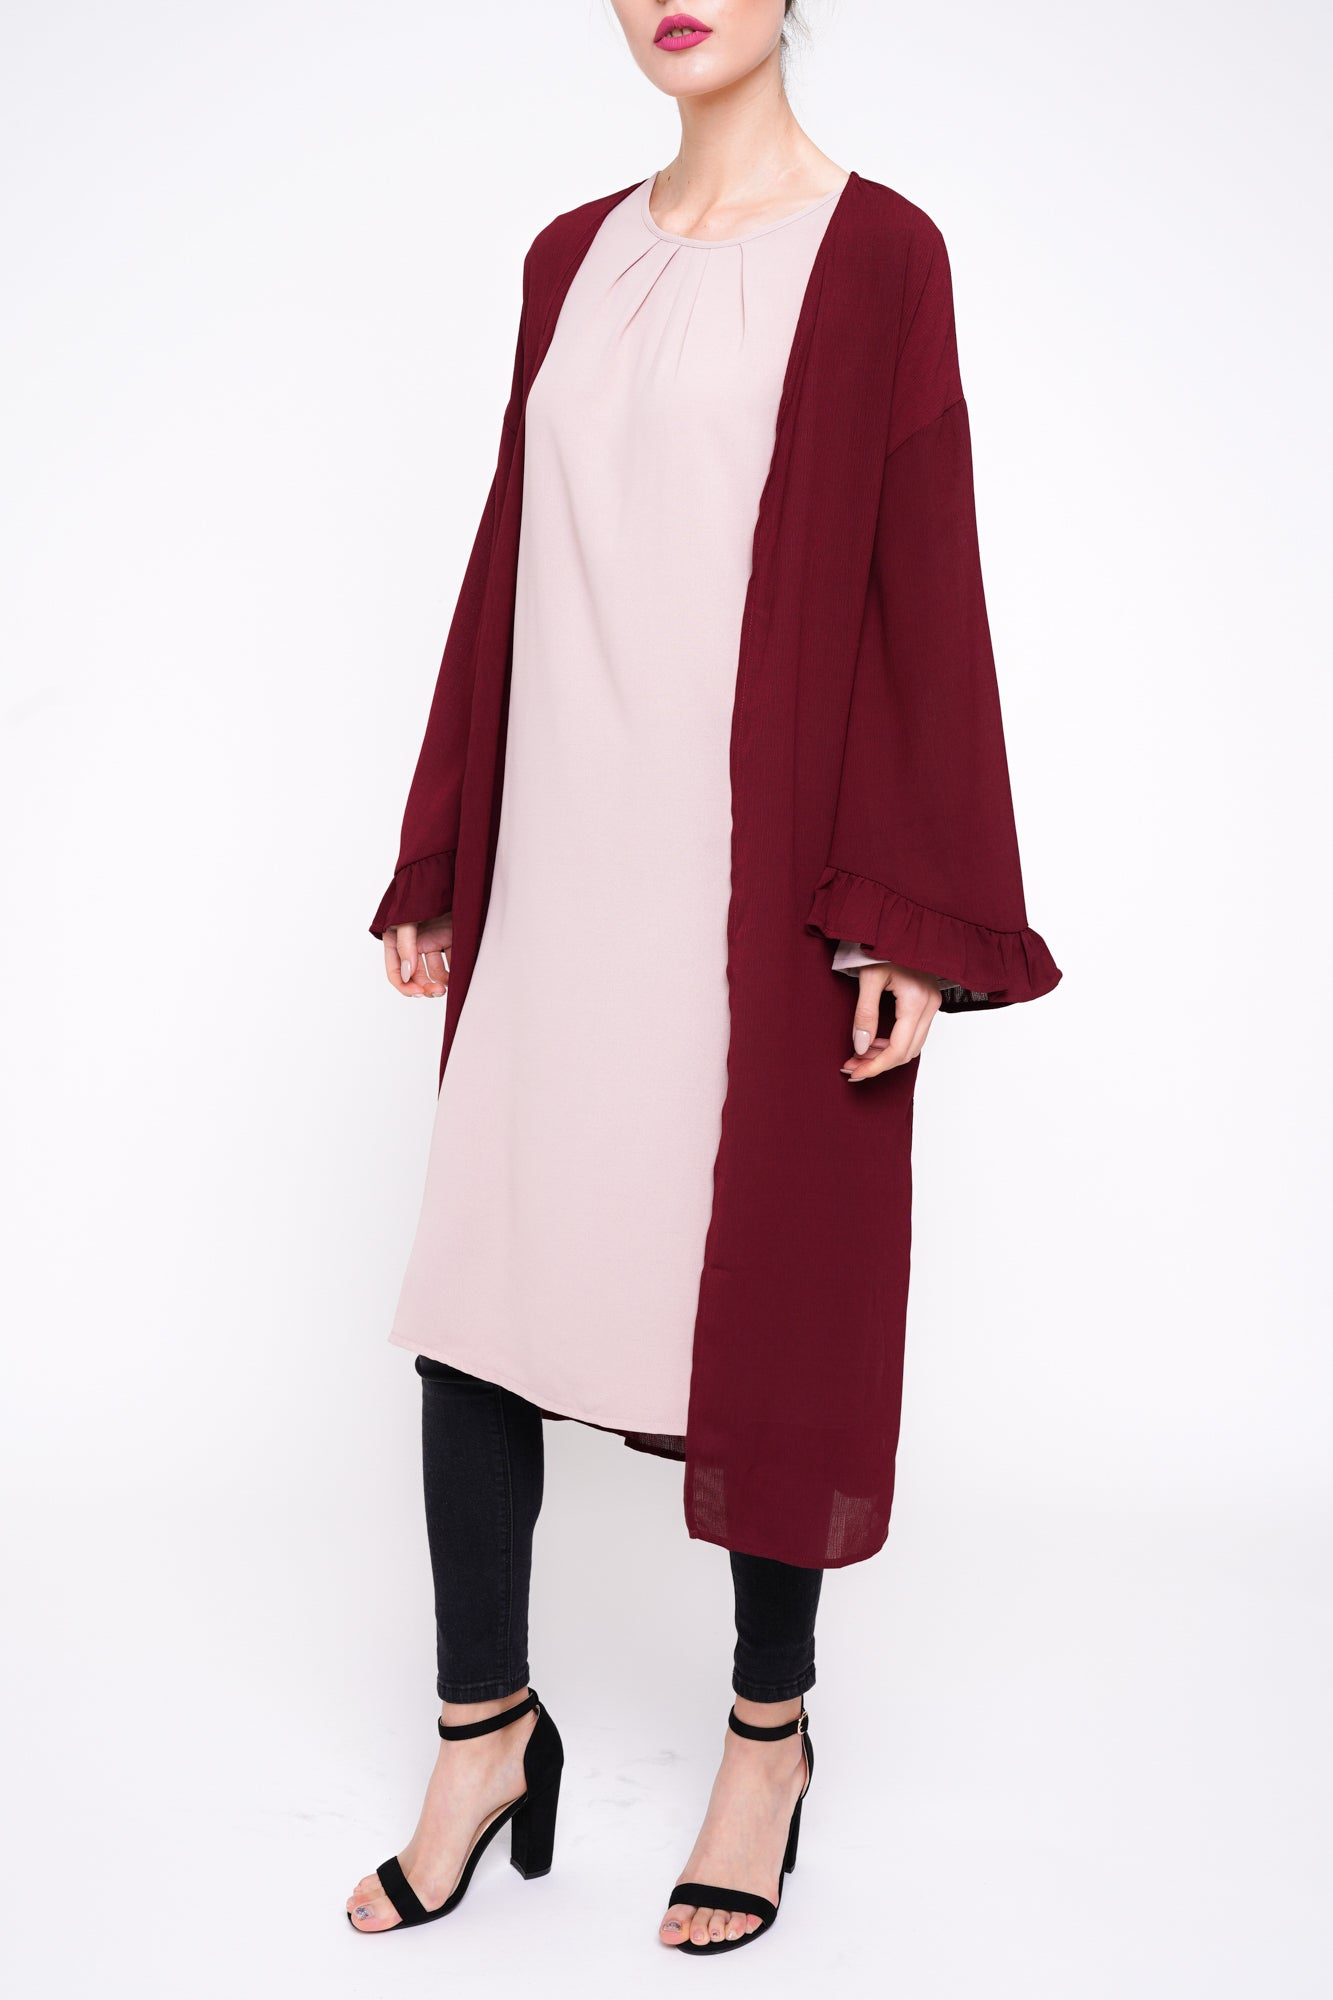 Bell Sleeve Cover Up Burgundy